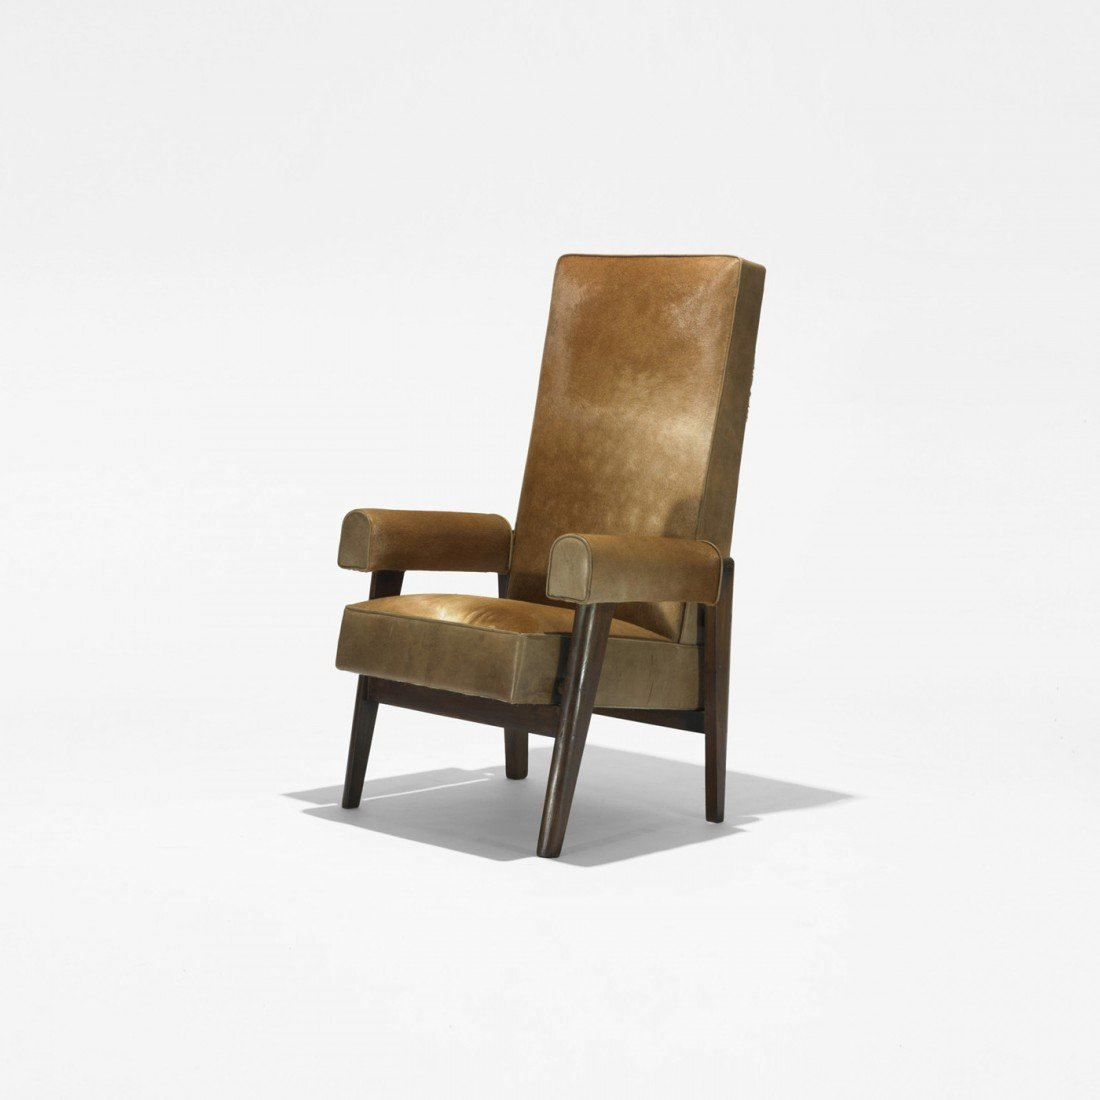 159: Le Corbusier and Jeanneret Judge's chair